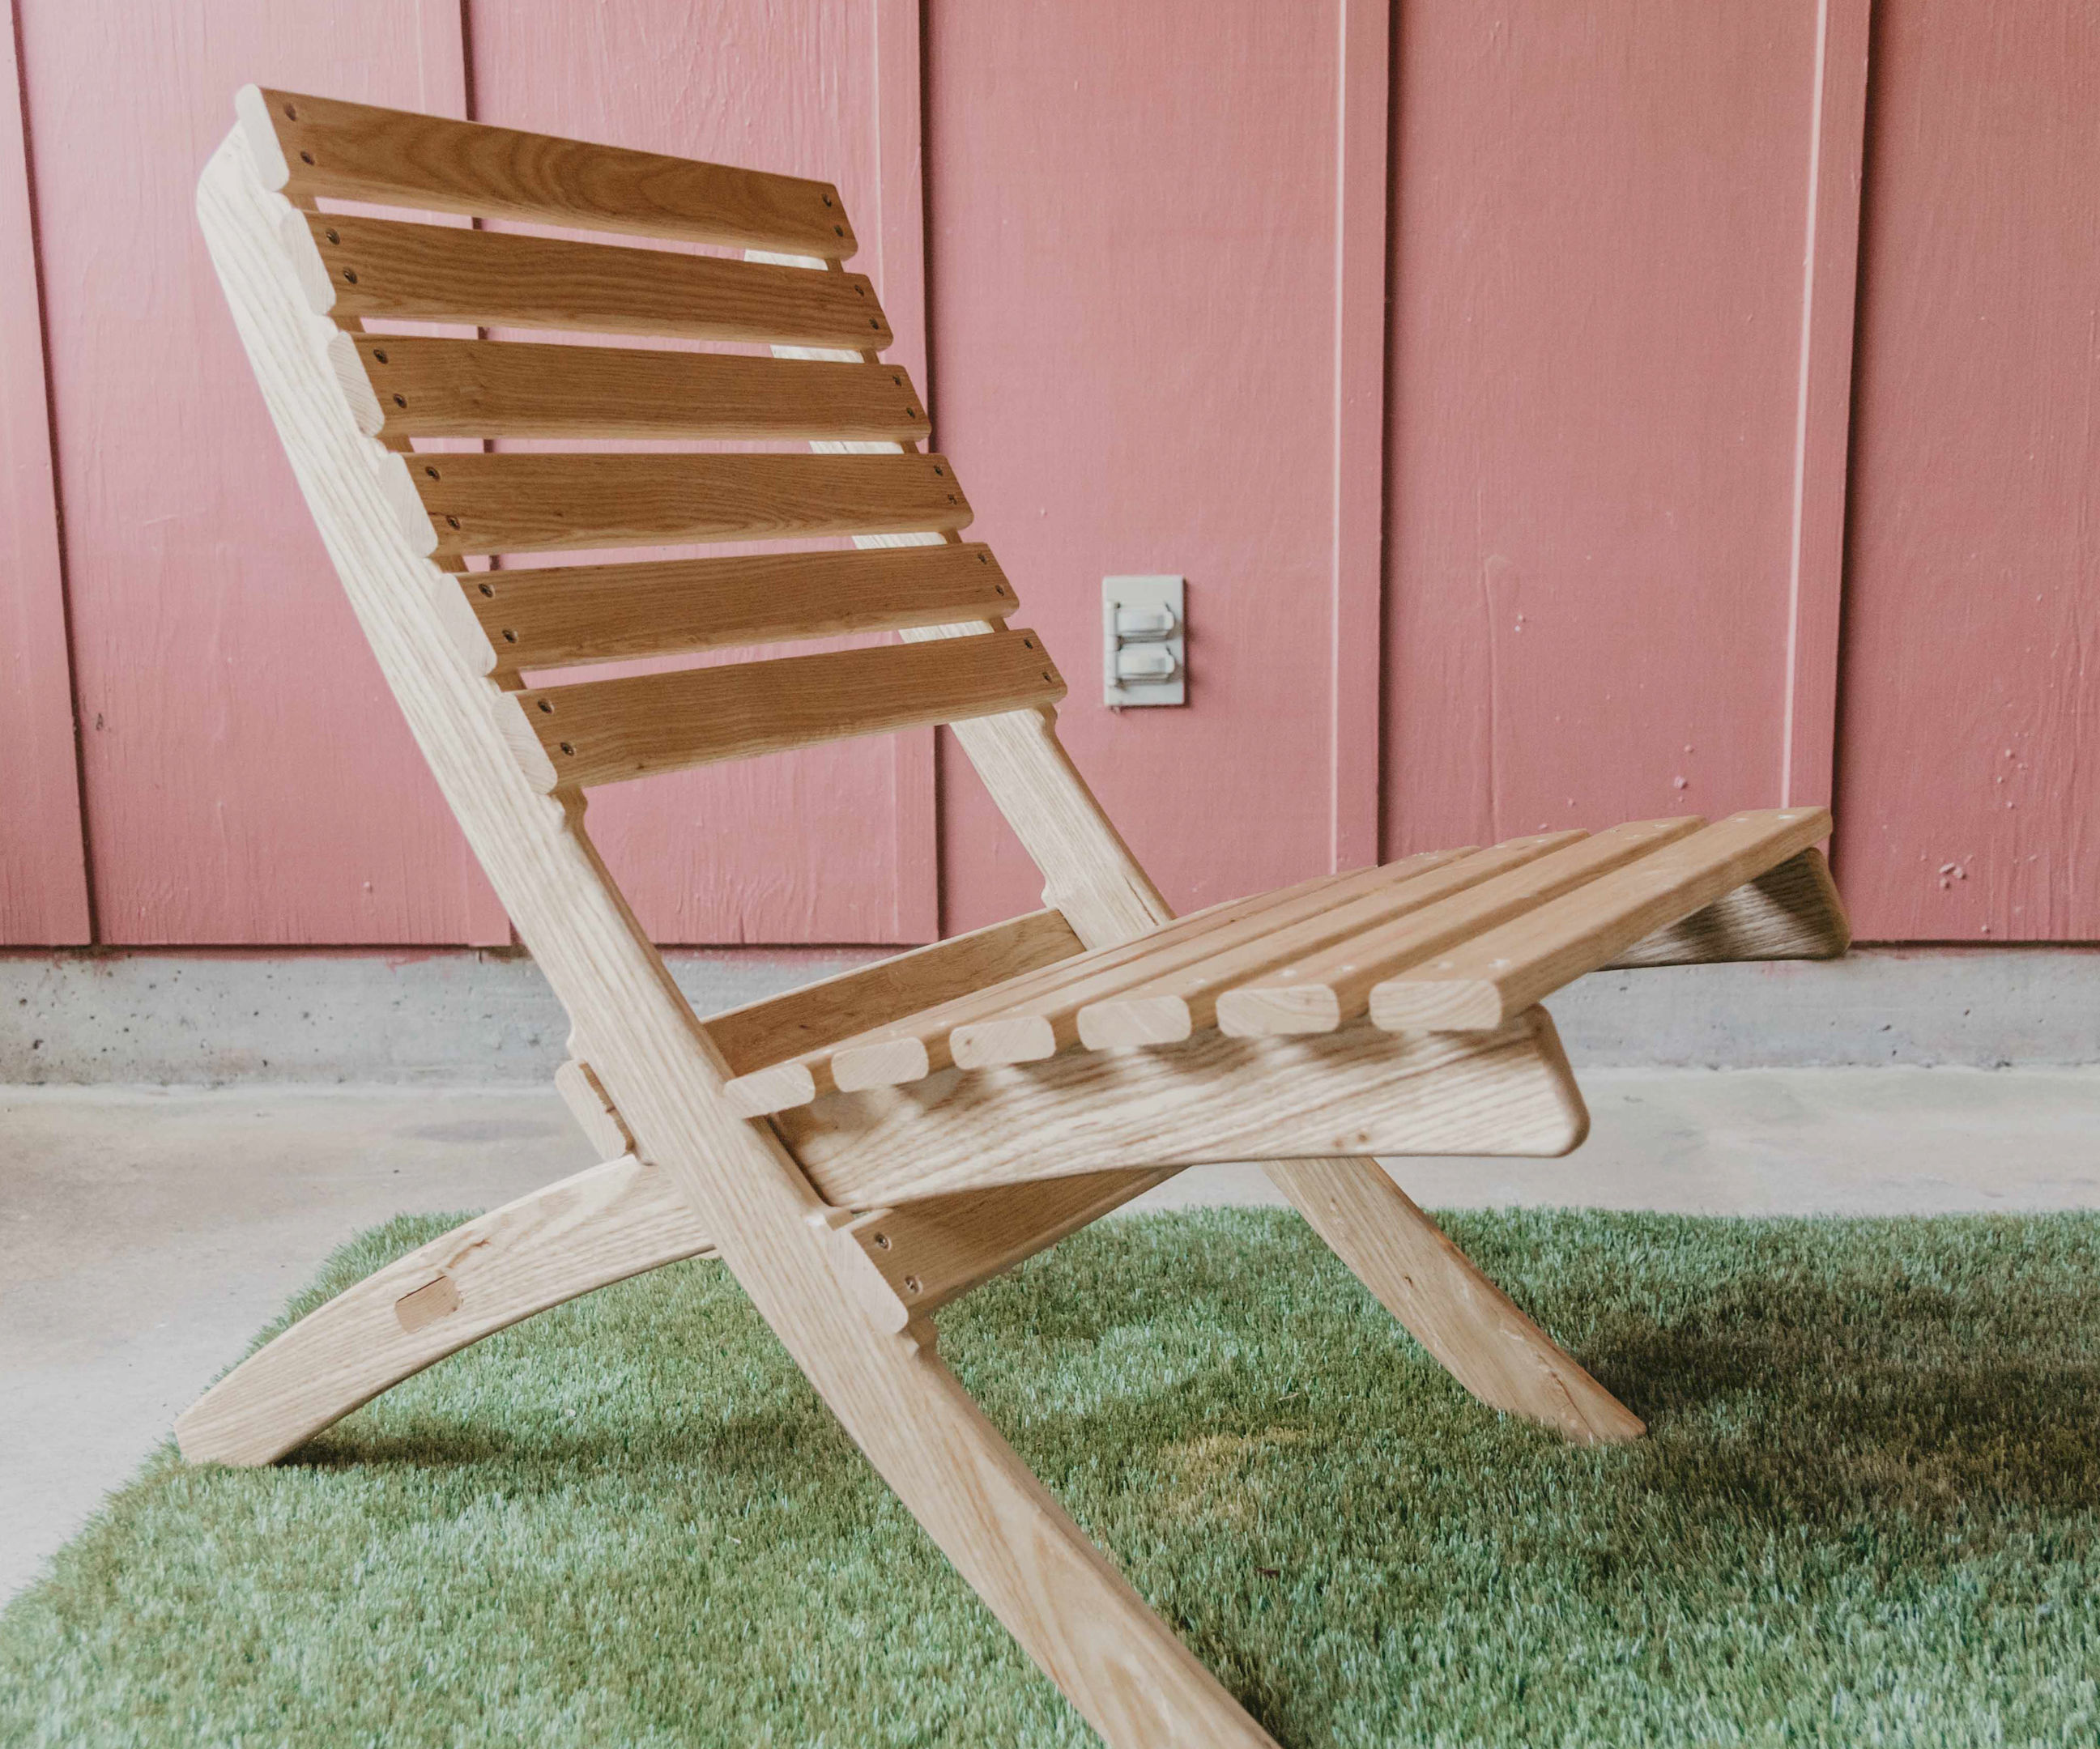 Nesting Chair With Full Size Templates